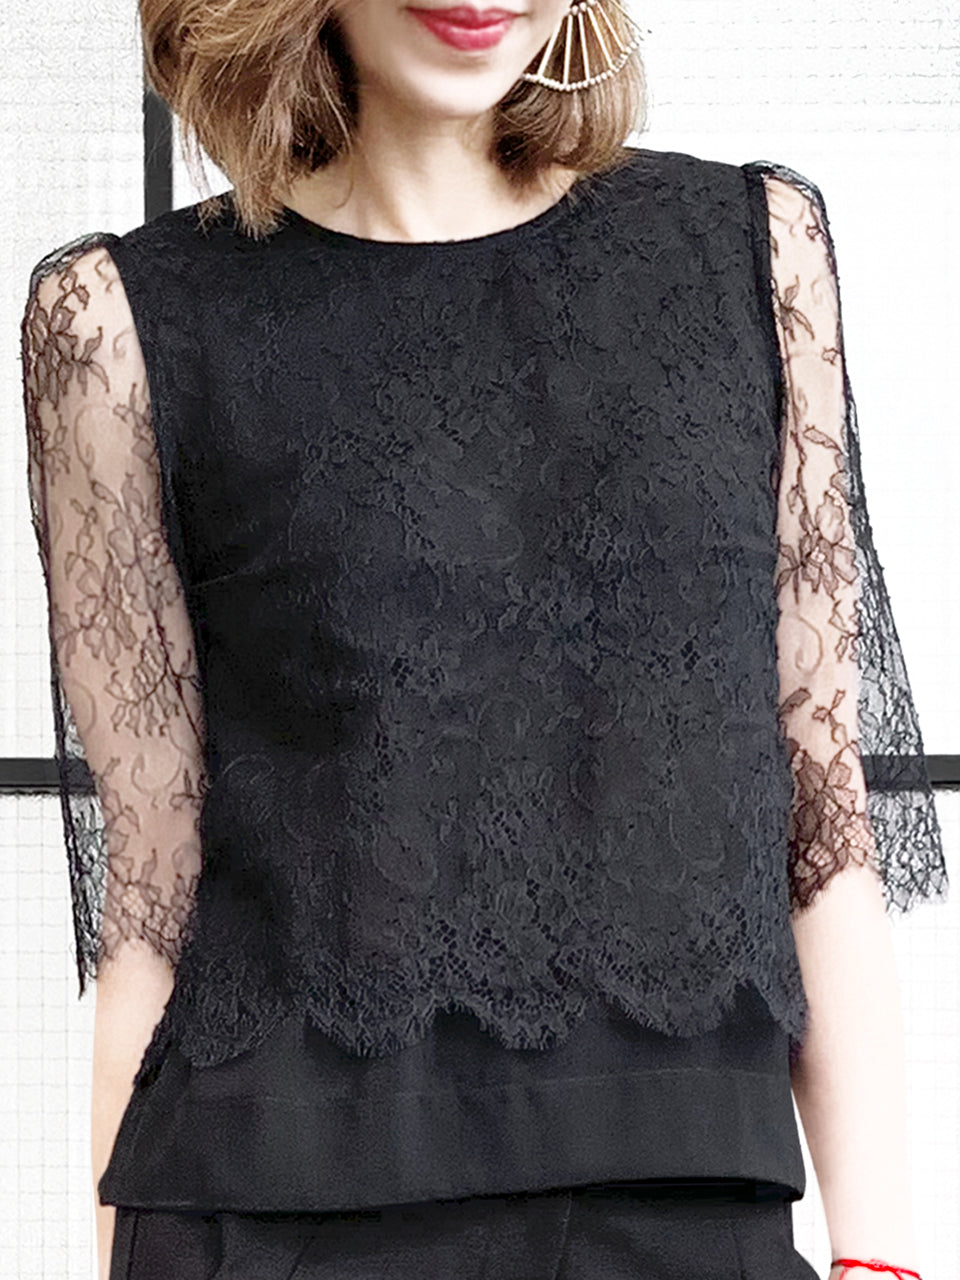 Surprise Sale! Black Eyelash Scalloped Lace Pearly Button Detail Chiffon Blouse